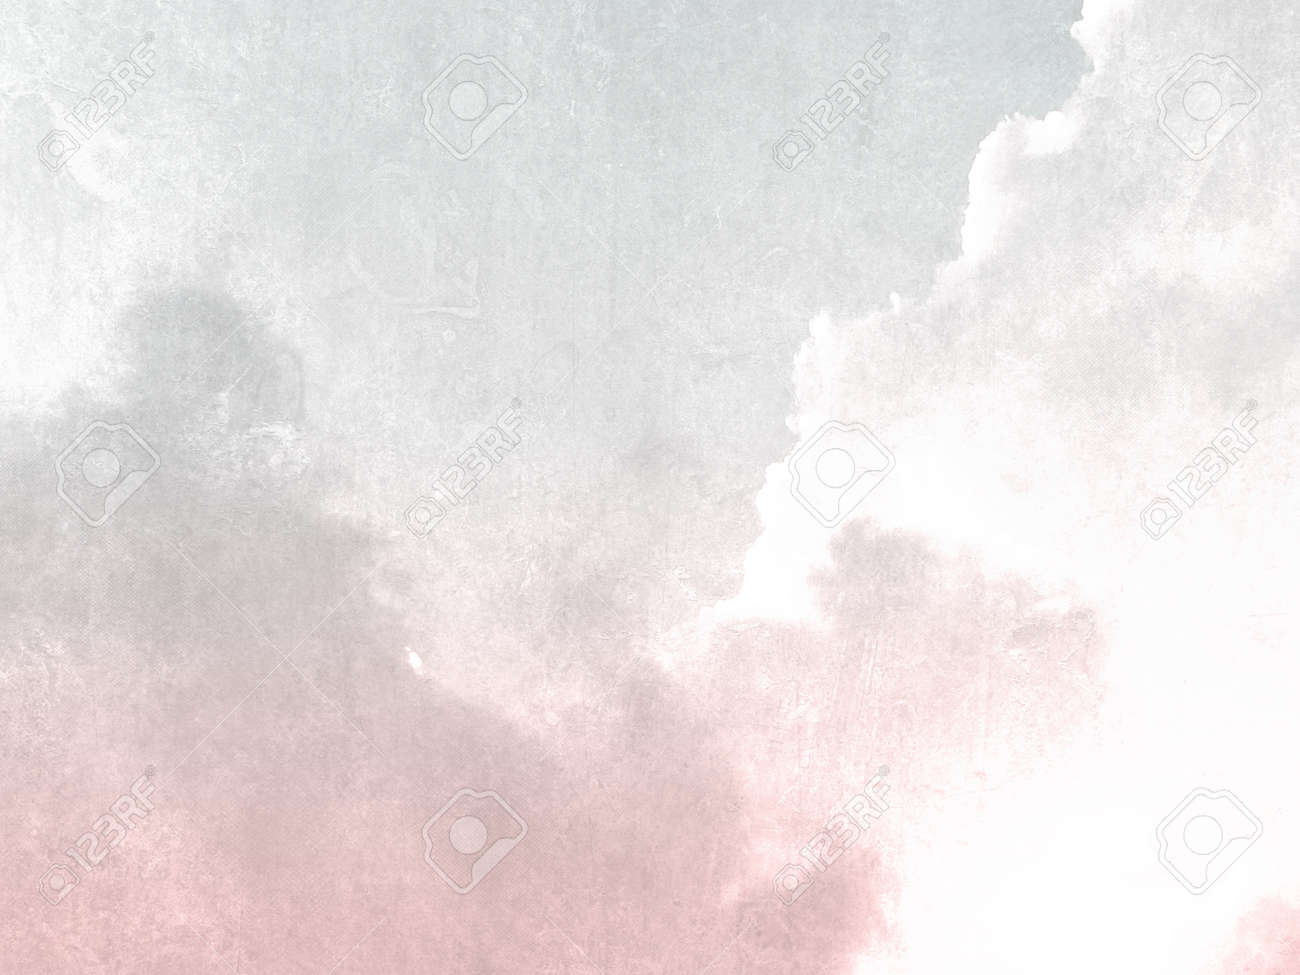 Gray pink sky background vintage in soft watercolor - 53540913